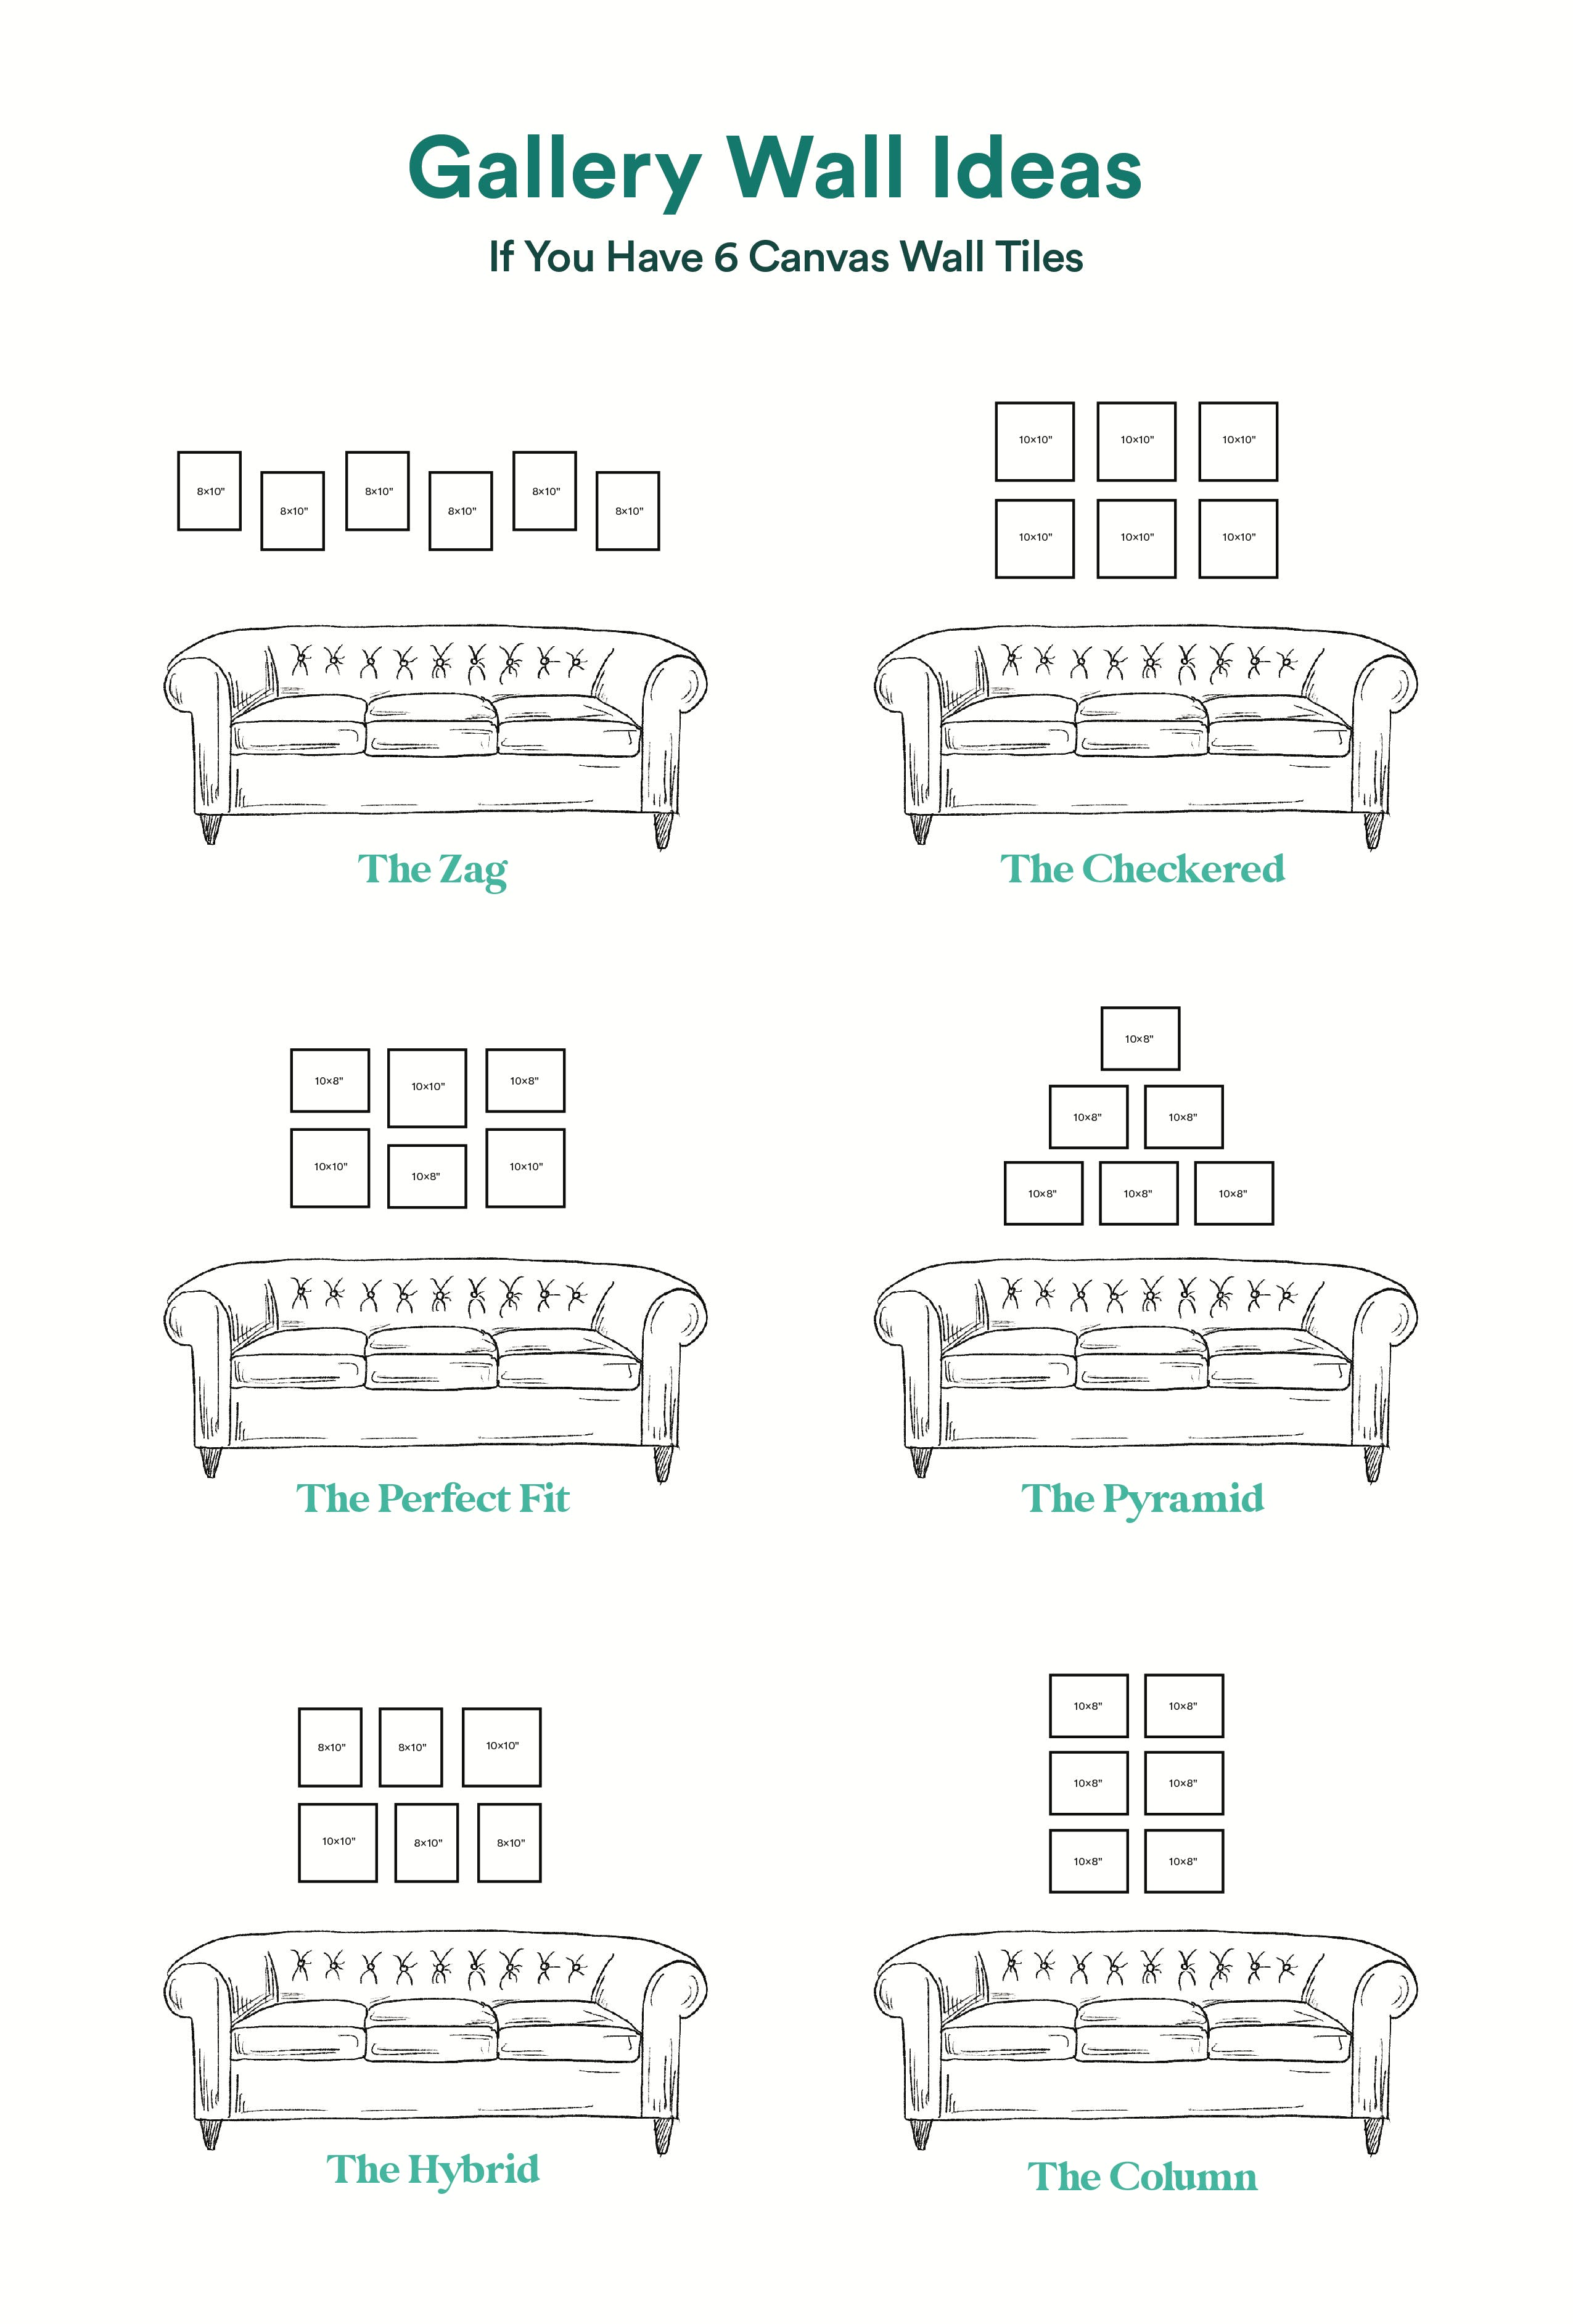 18 Gallery Wall Layouts And Ideas For 2020 Gallery Wall Layout Generator Chatbooks